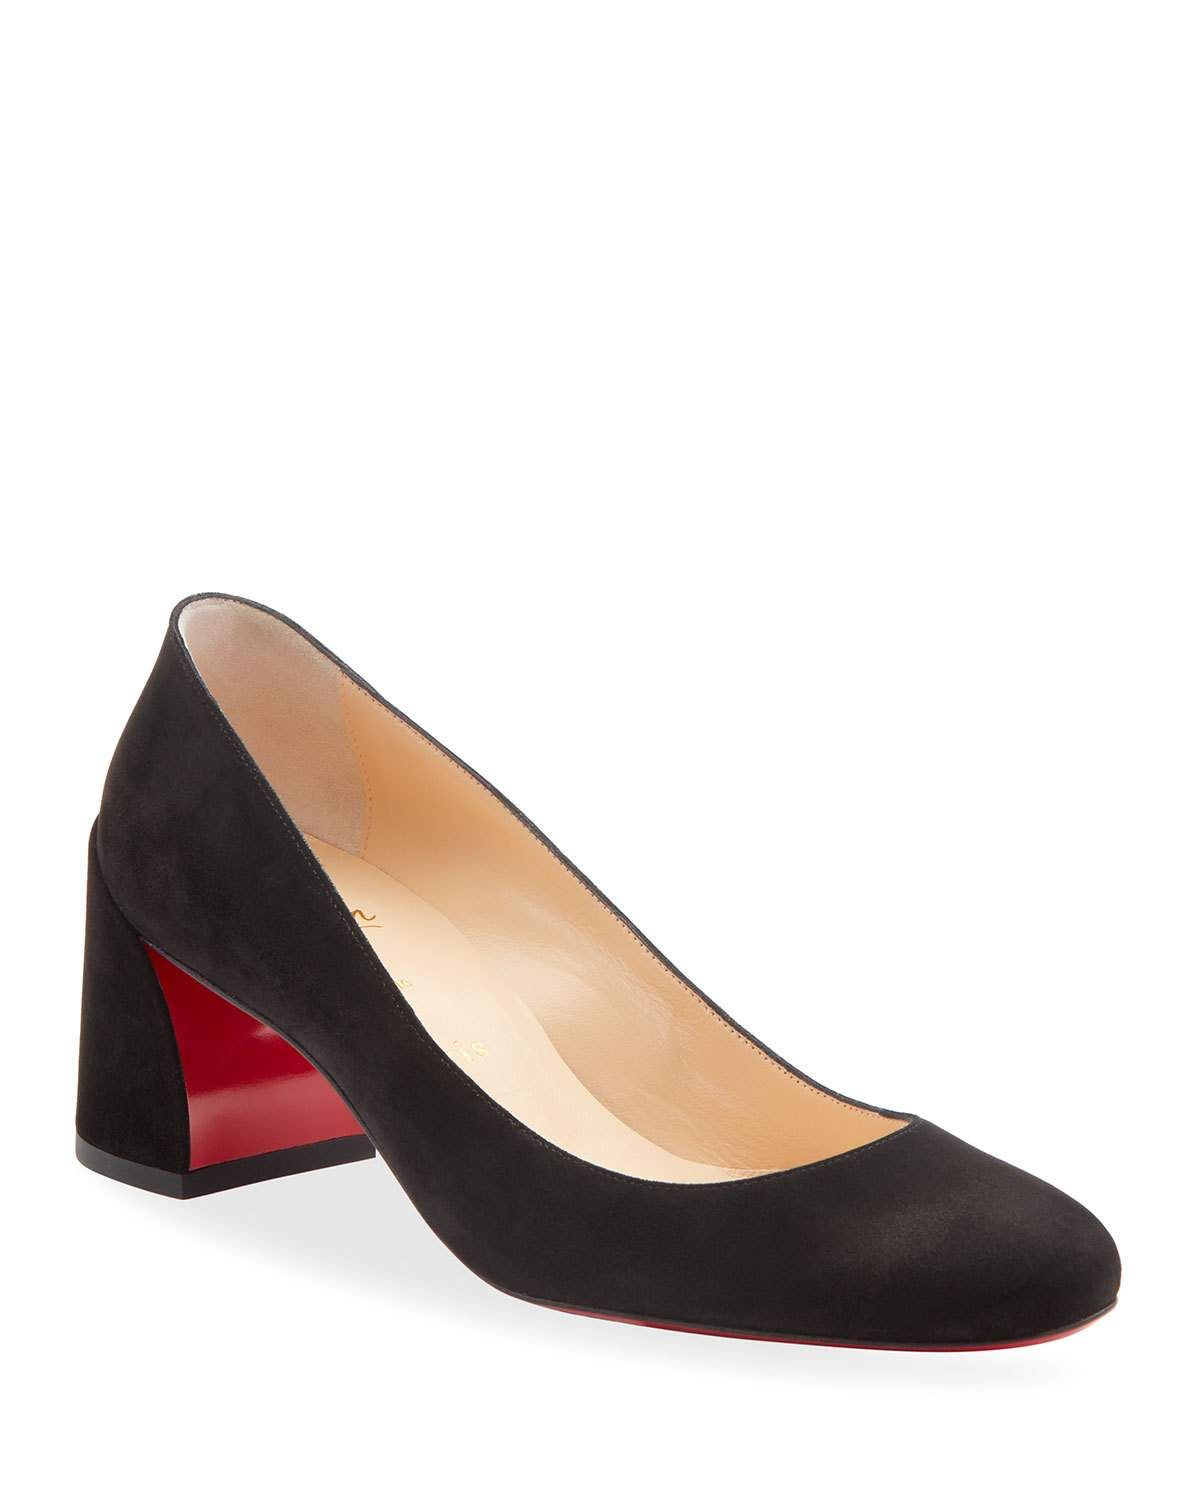 Miss Sab Suede Red Sole Pumps Christian Louboutin Red Bottoms Christian Louboutin Louboutin